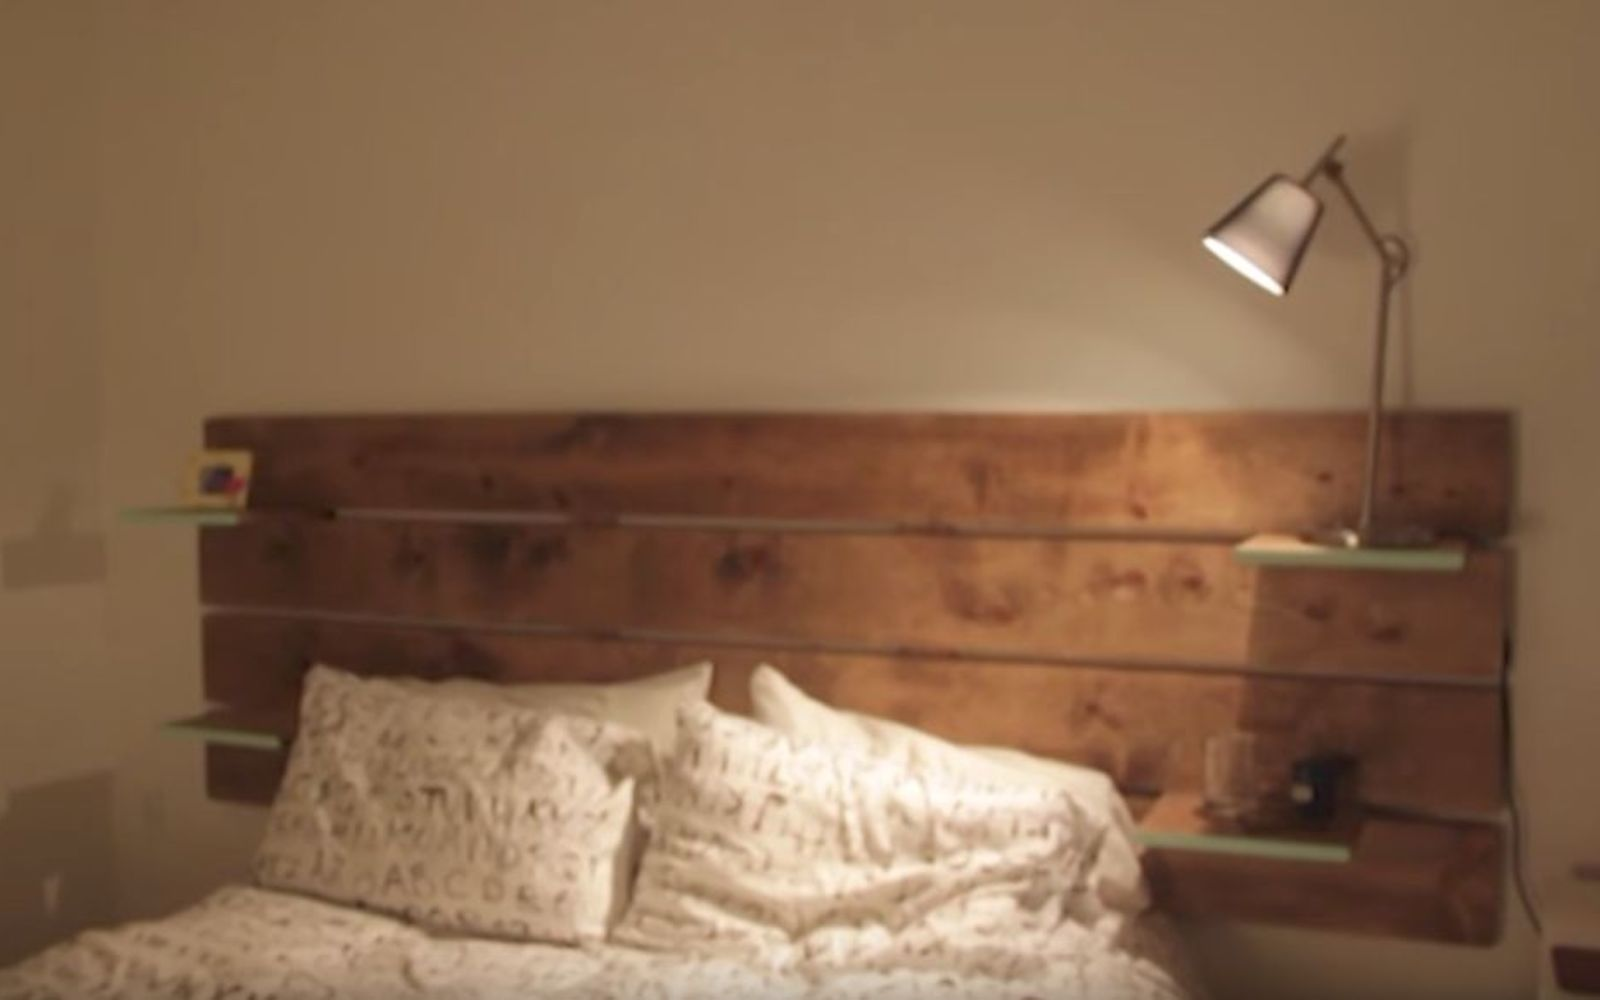 s these are the diy headboard ideas you ve been dreaming of, Illuminate The Board With Embedded Lights